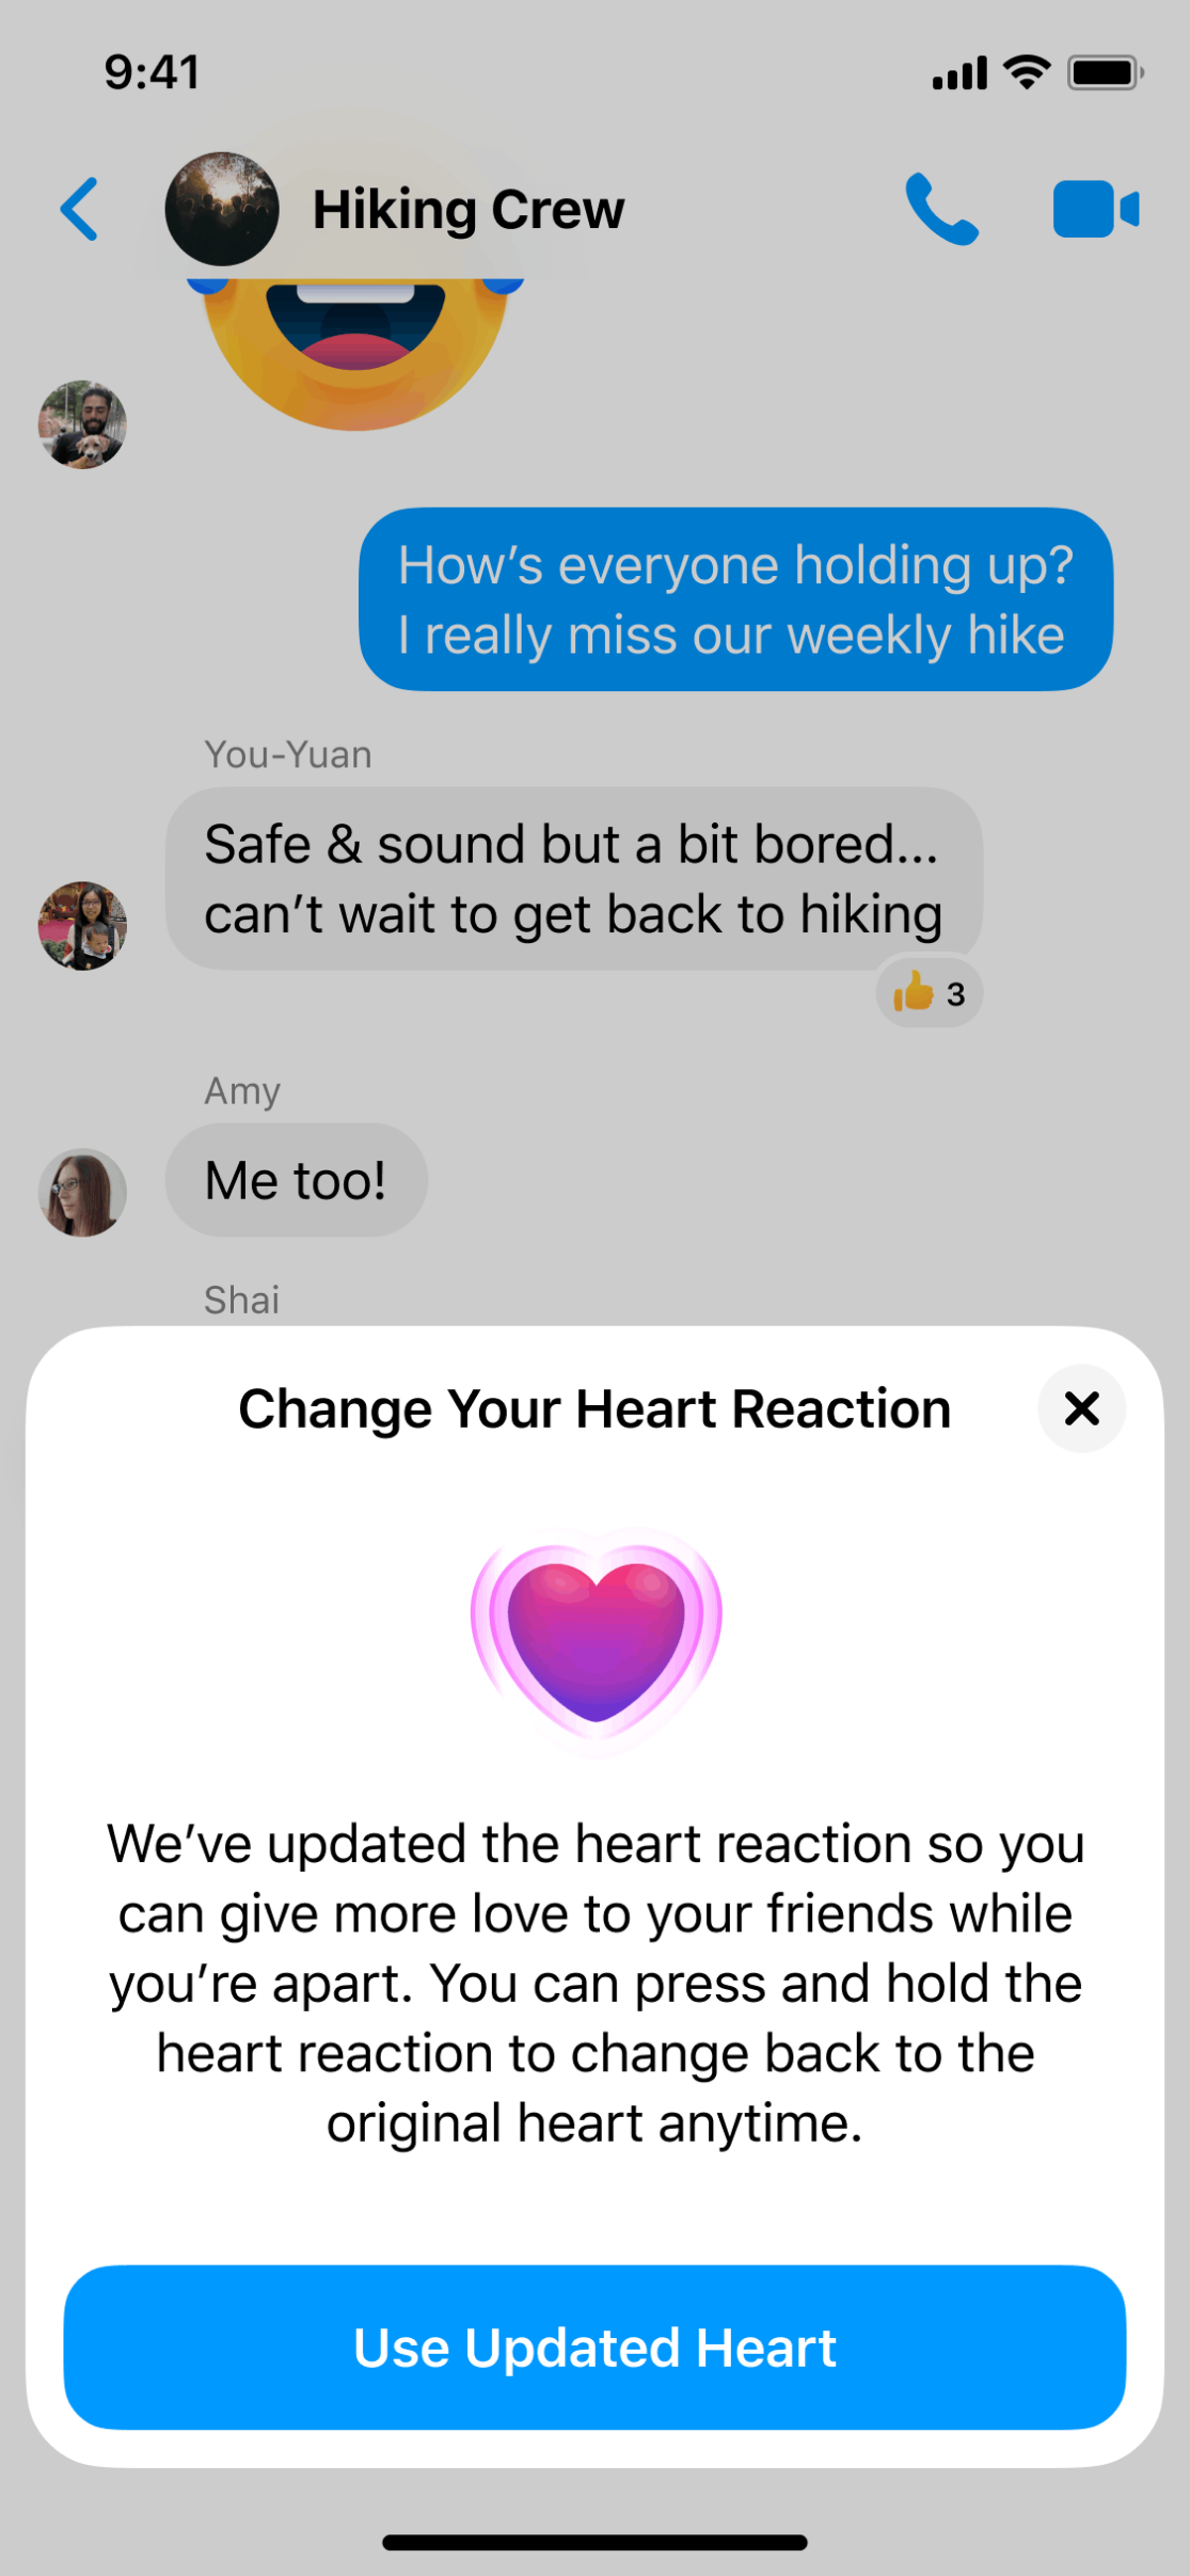 Facebook released a new hug reaction for posts, as well as a new reaction in Messenger.